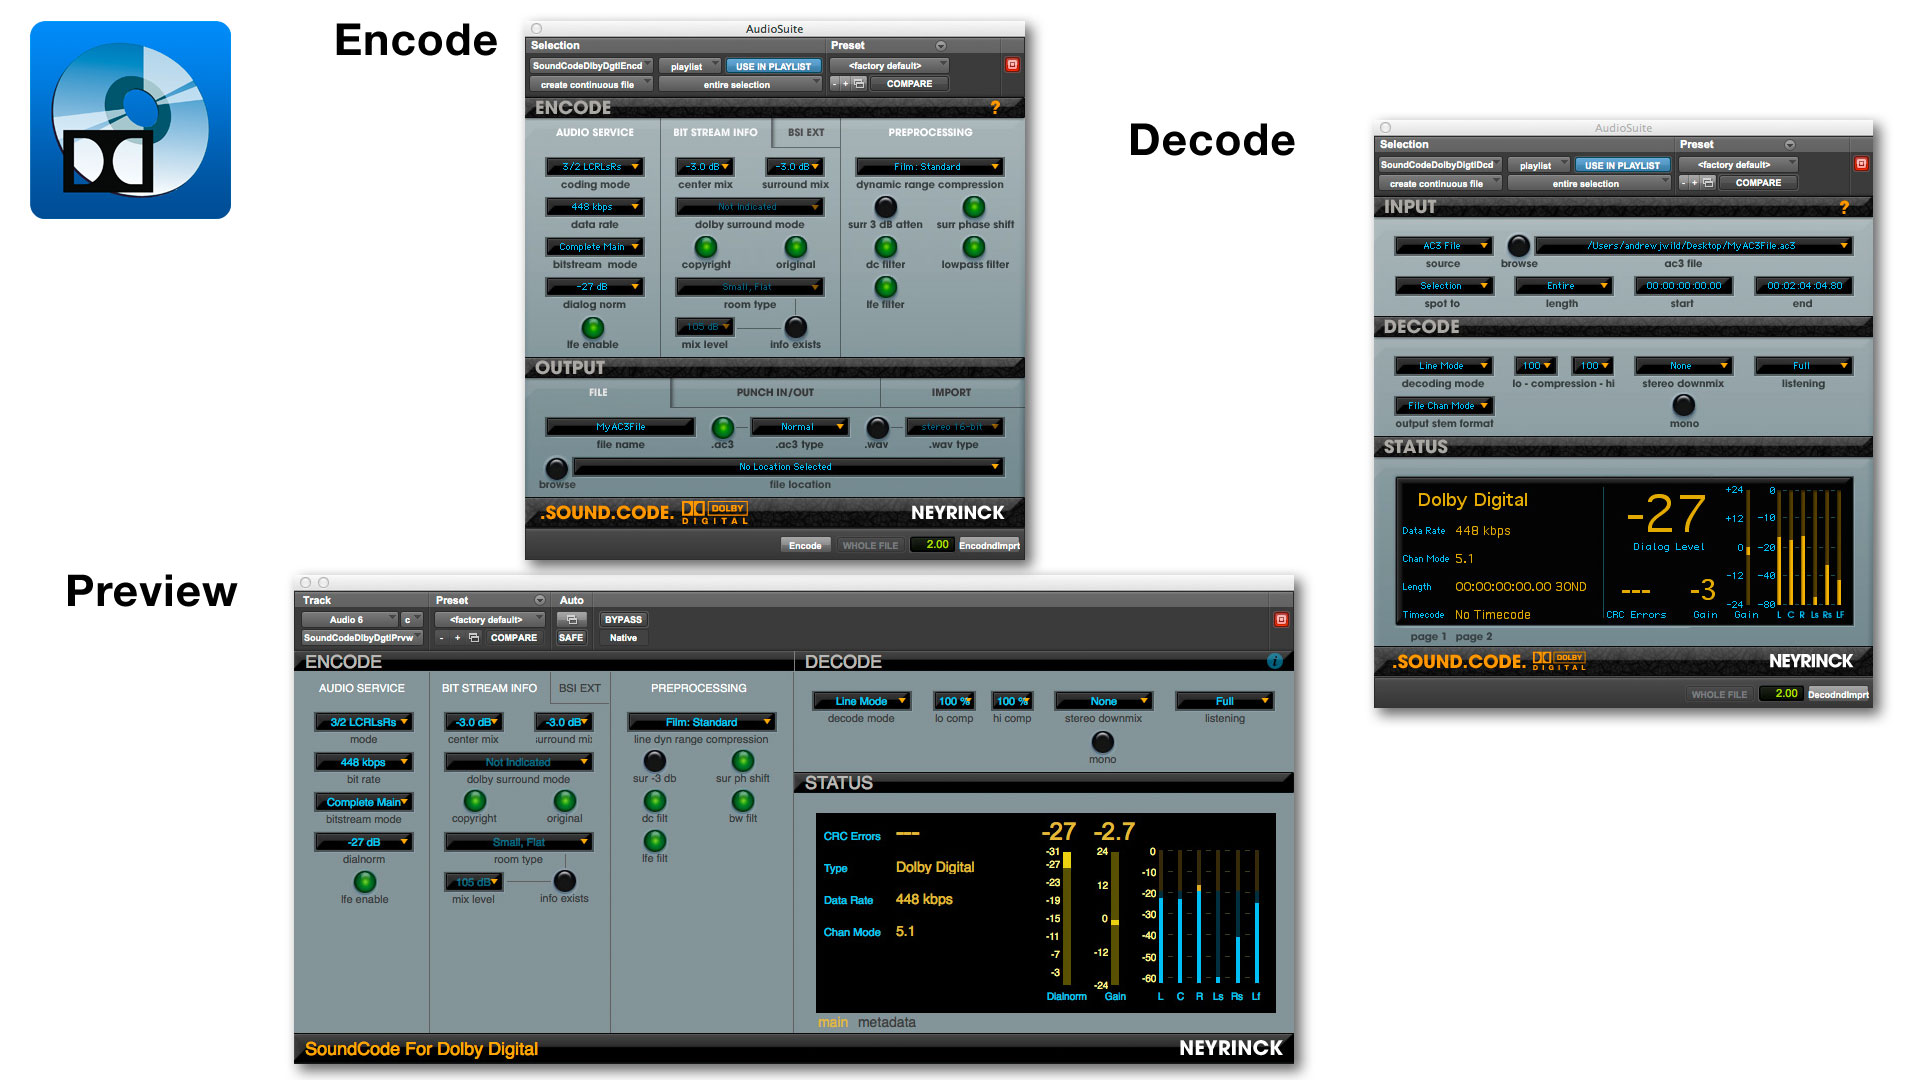 SoundCode for Dolby Digital 2